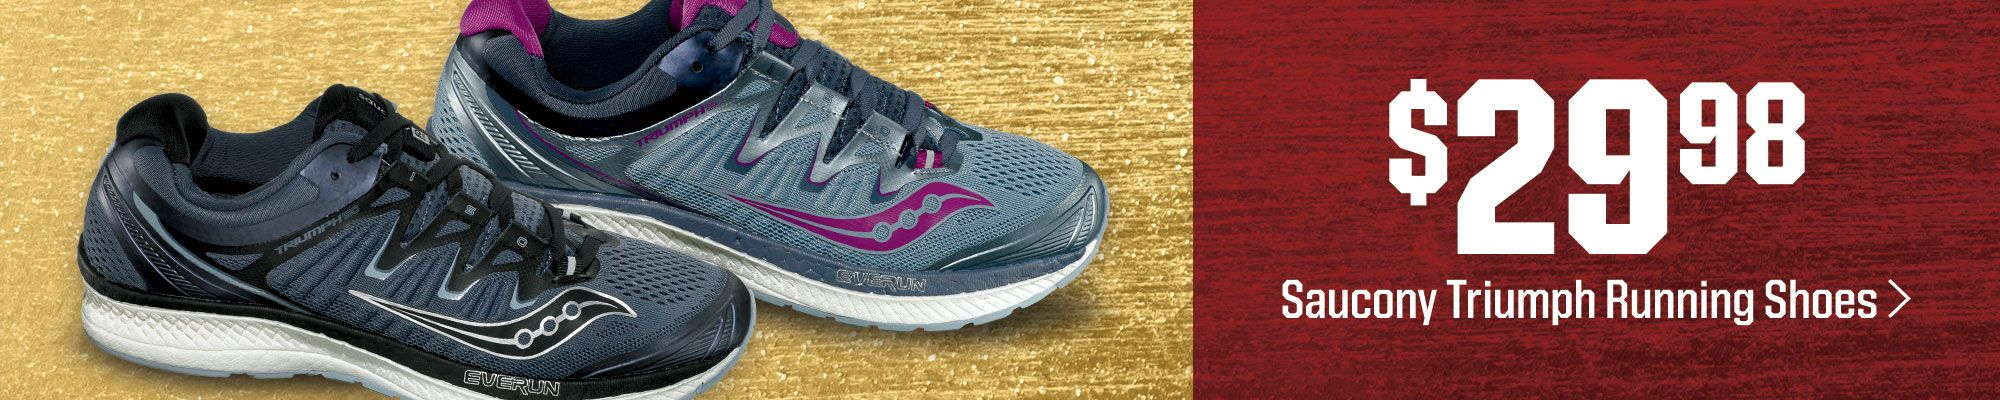 $29.98 - Saucony Triumph Running Shoes